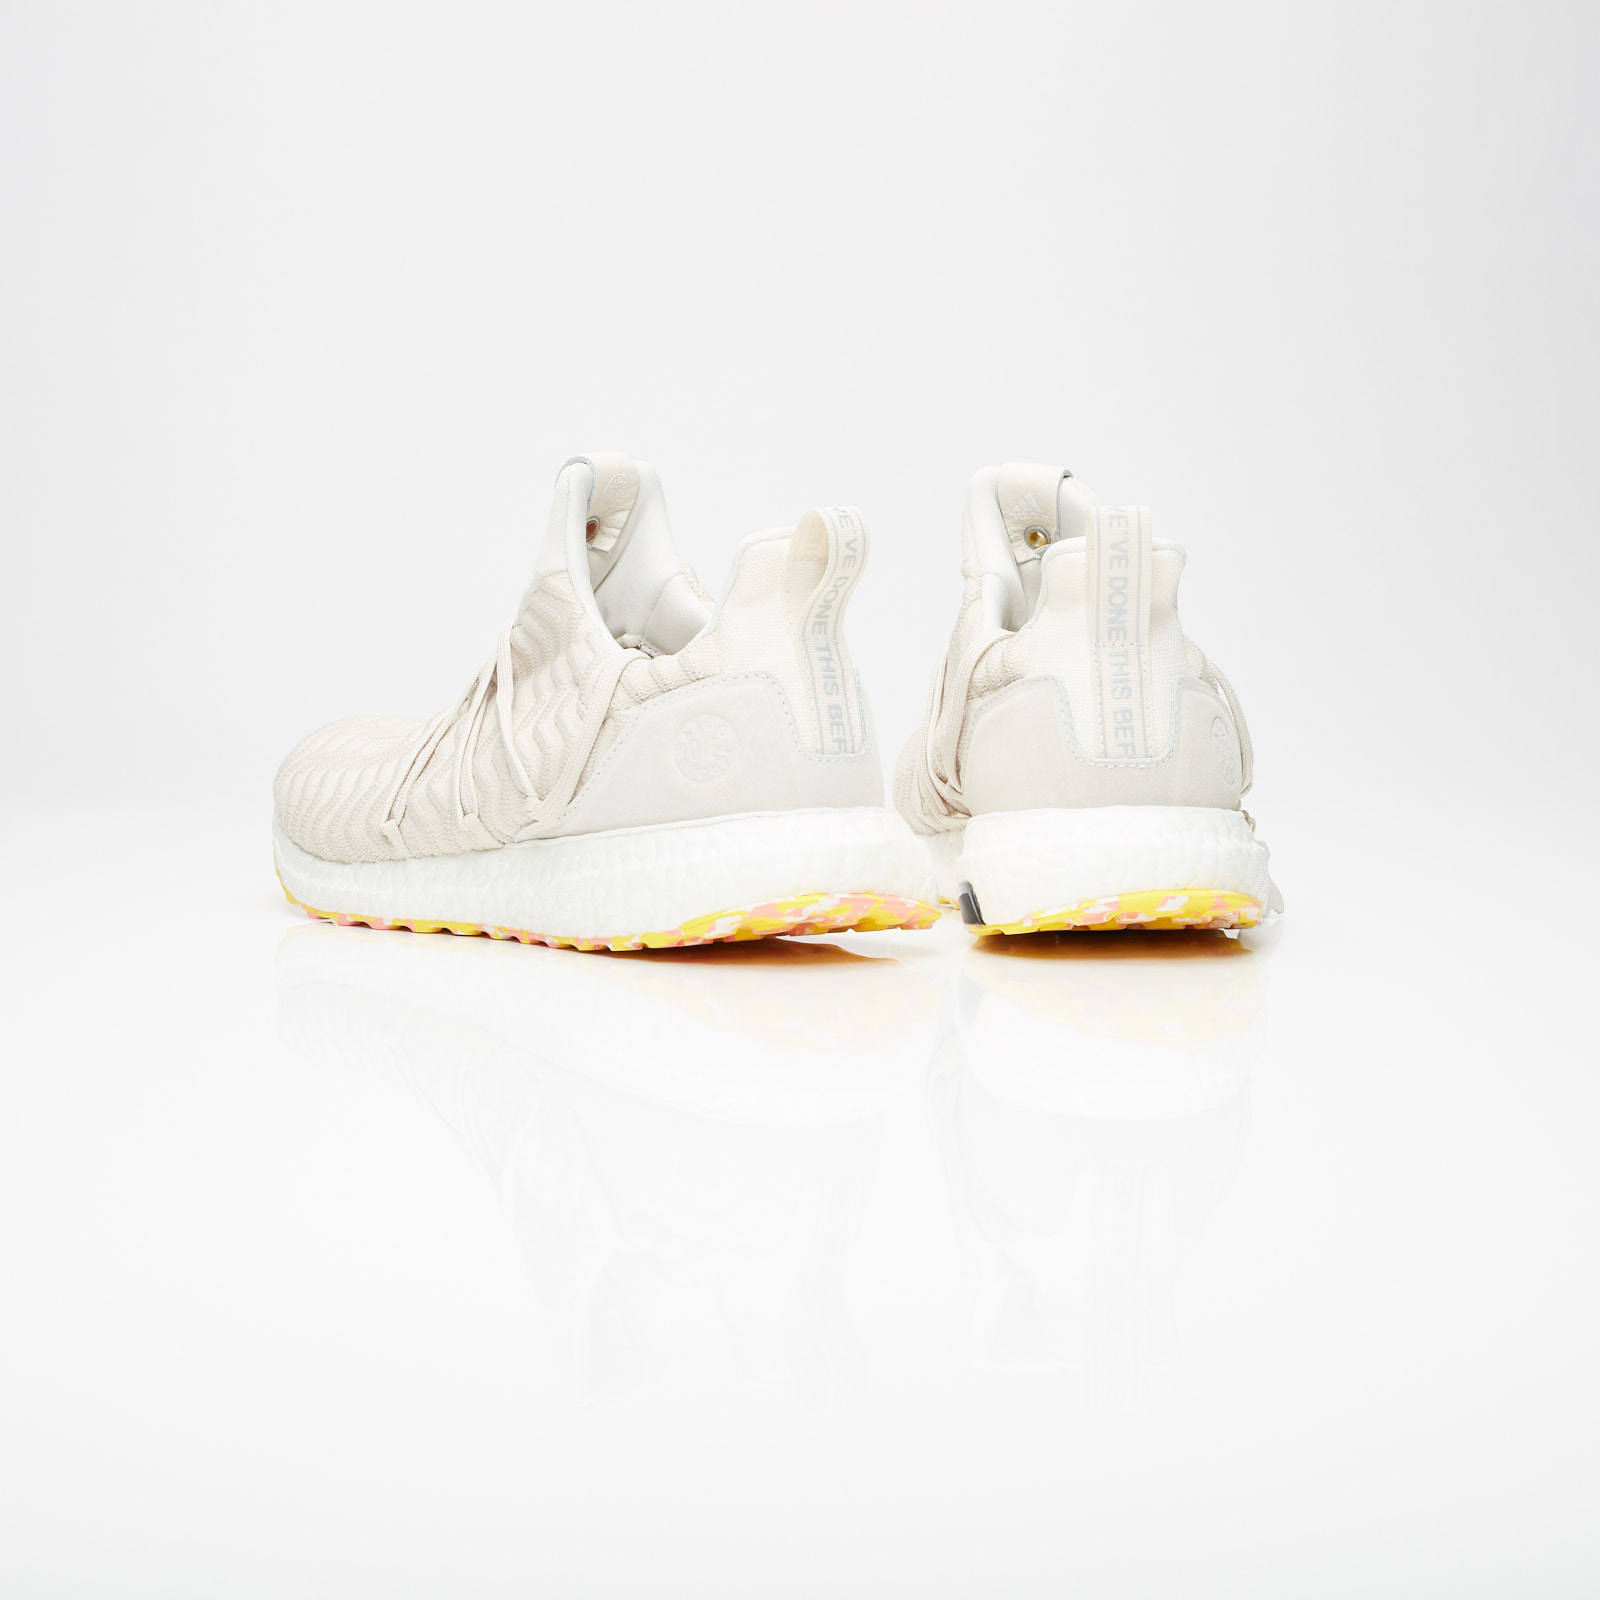 02-adidas-ultra-boost-consortium-a-kind-of-guise-bb7370